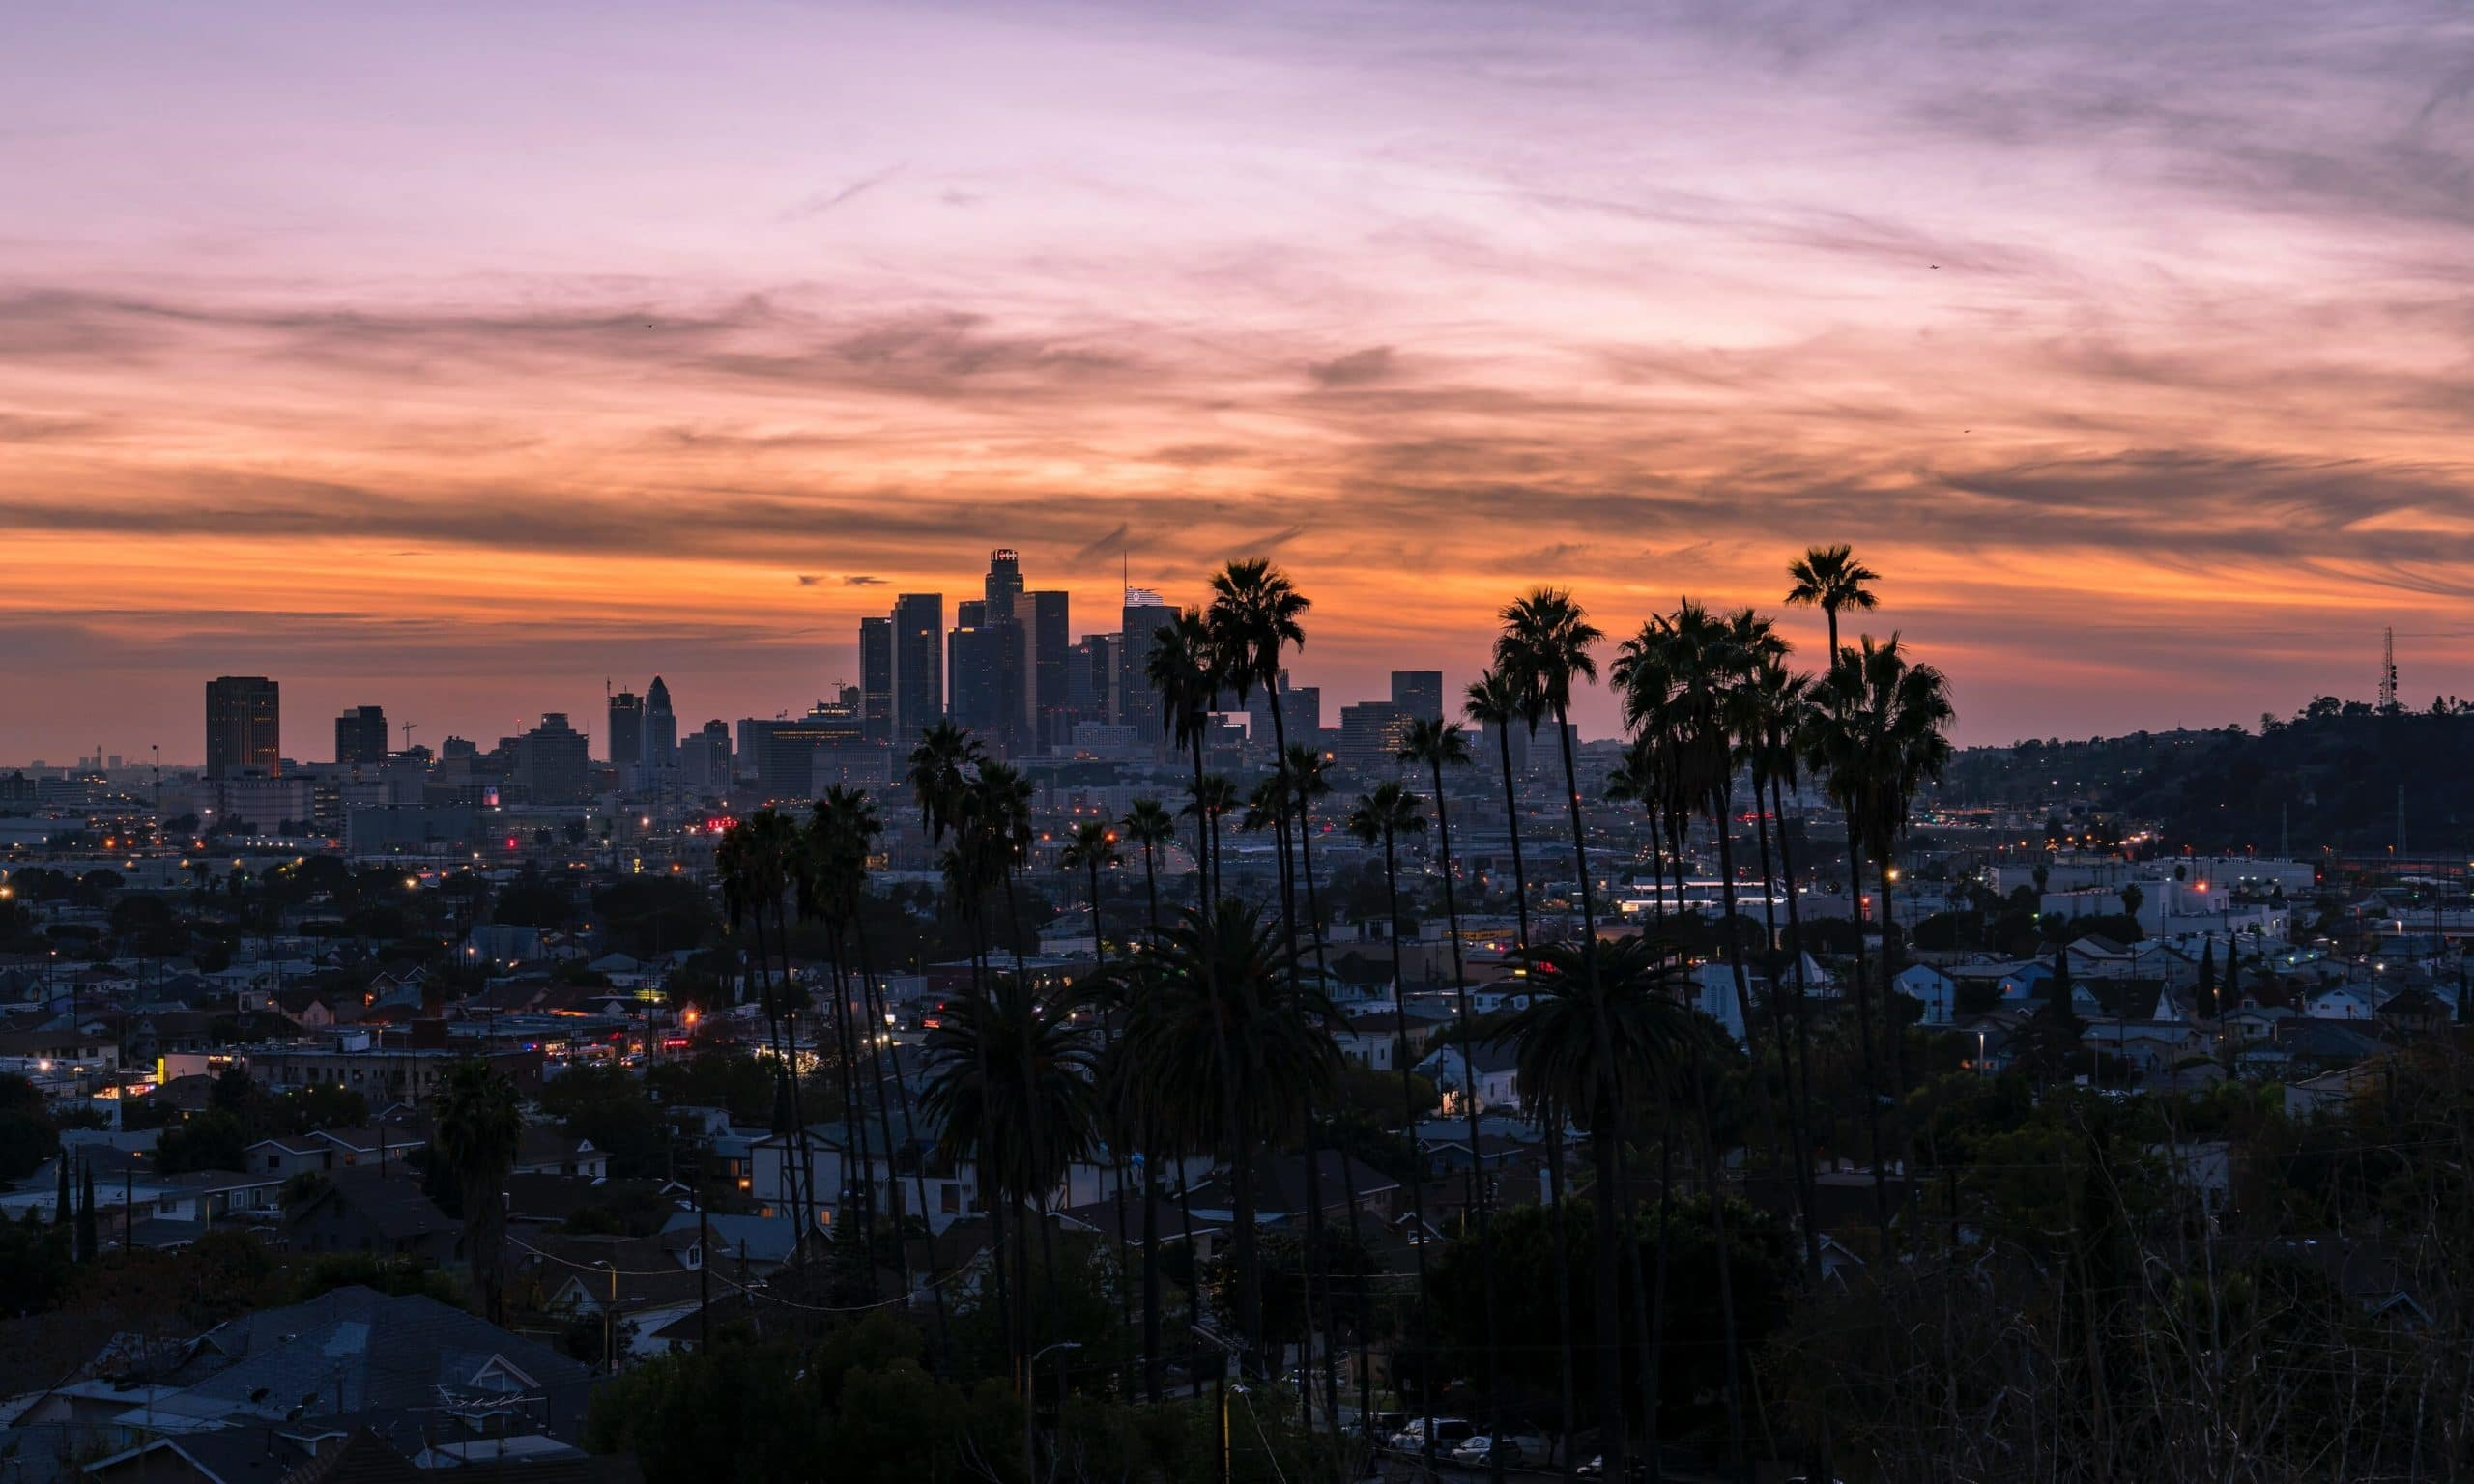 Instagrammable Places in Los Angeles (Guide)